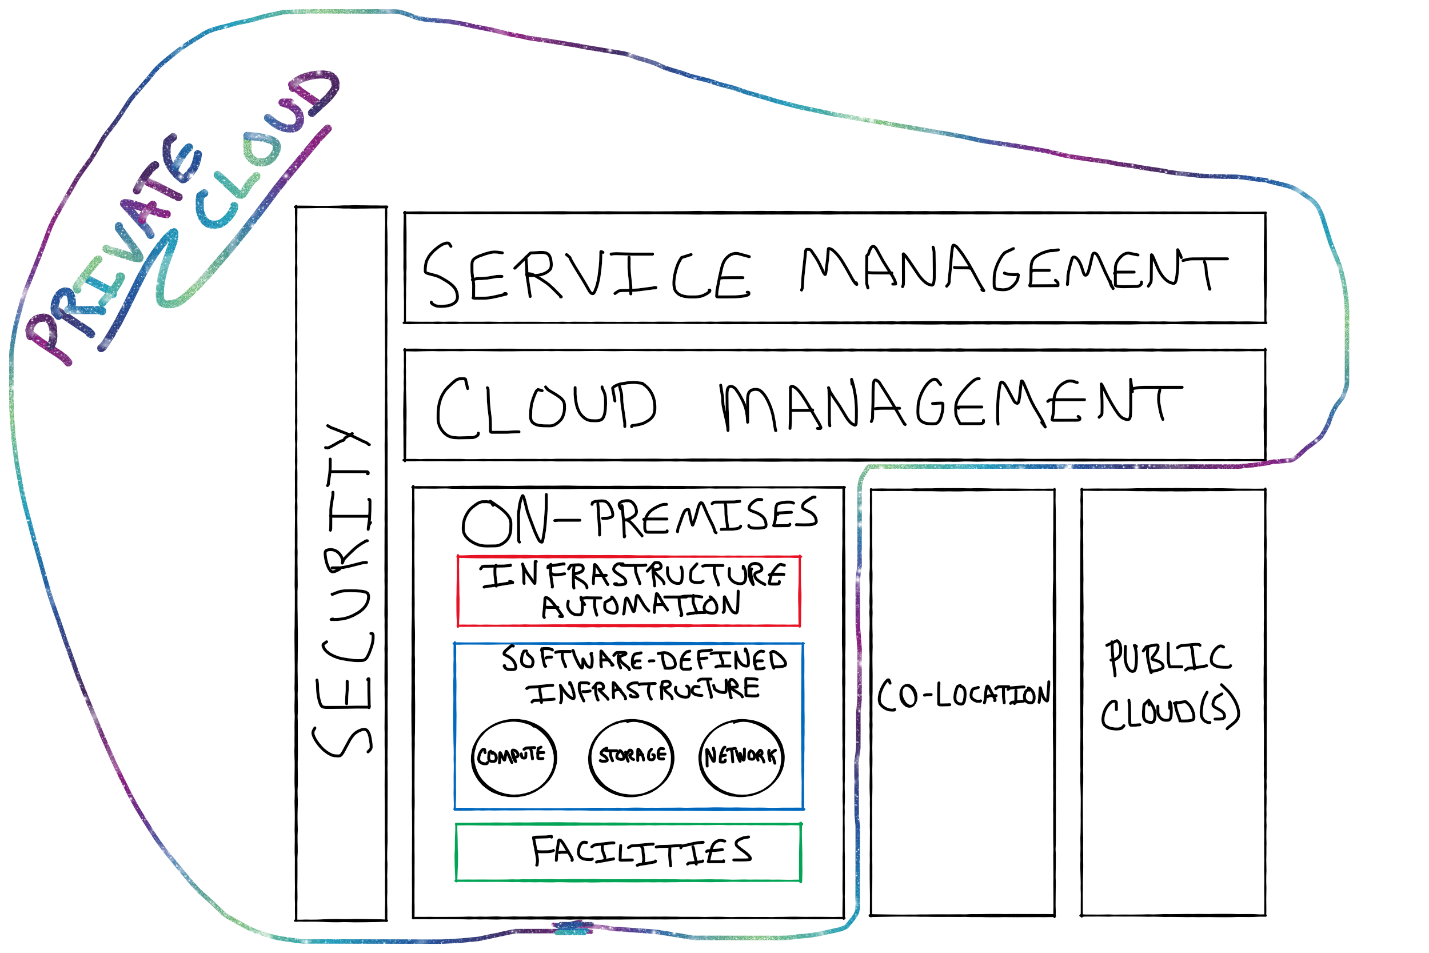 Software-defined data center core component of a private cloud model